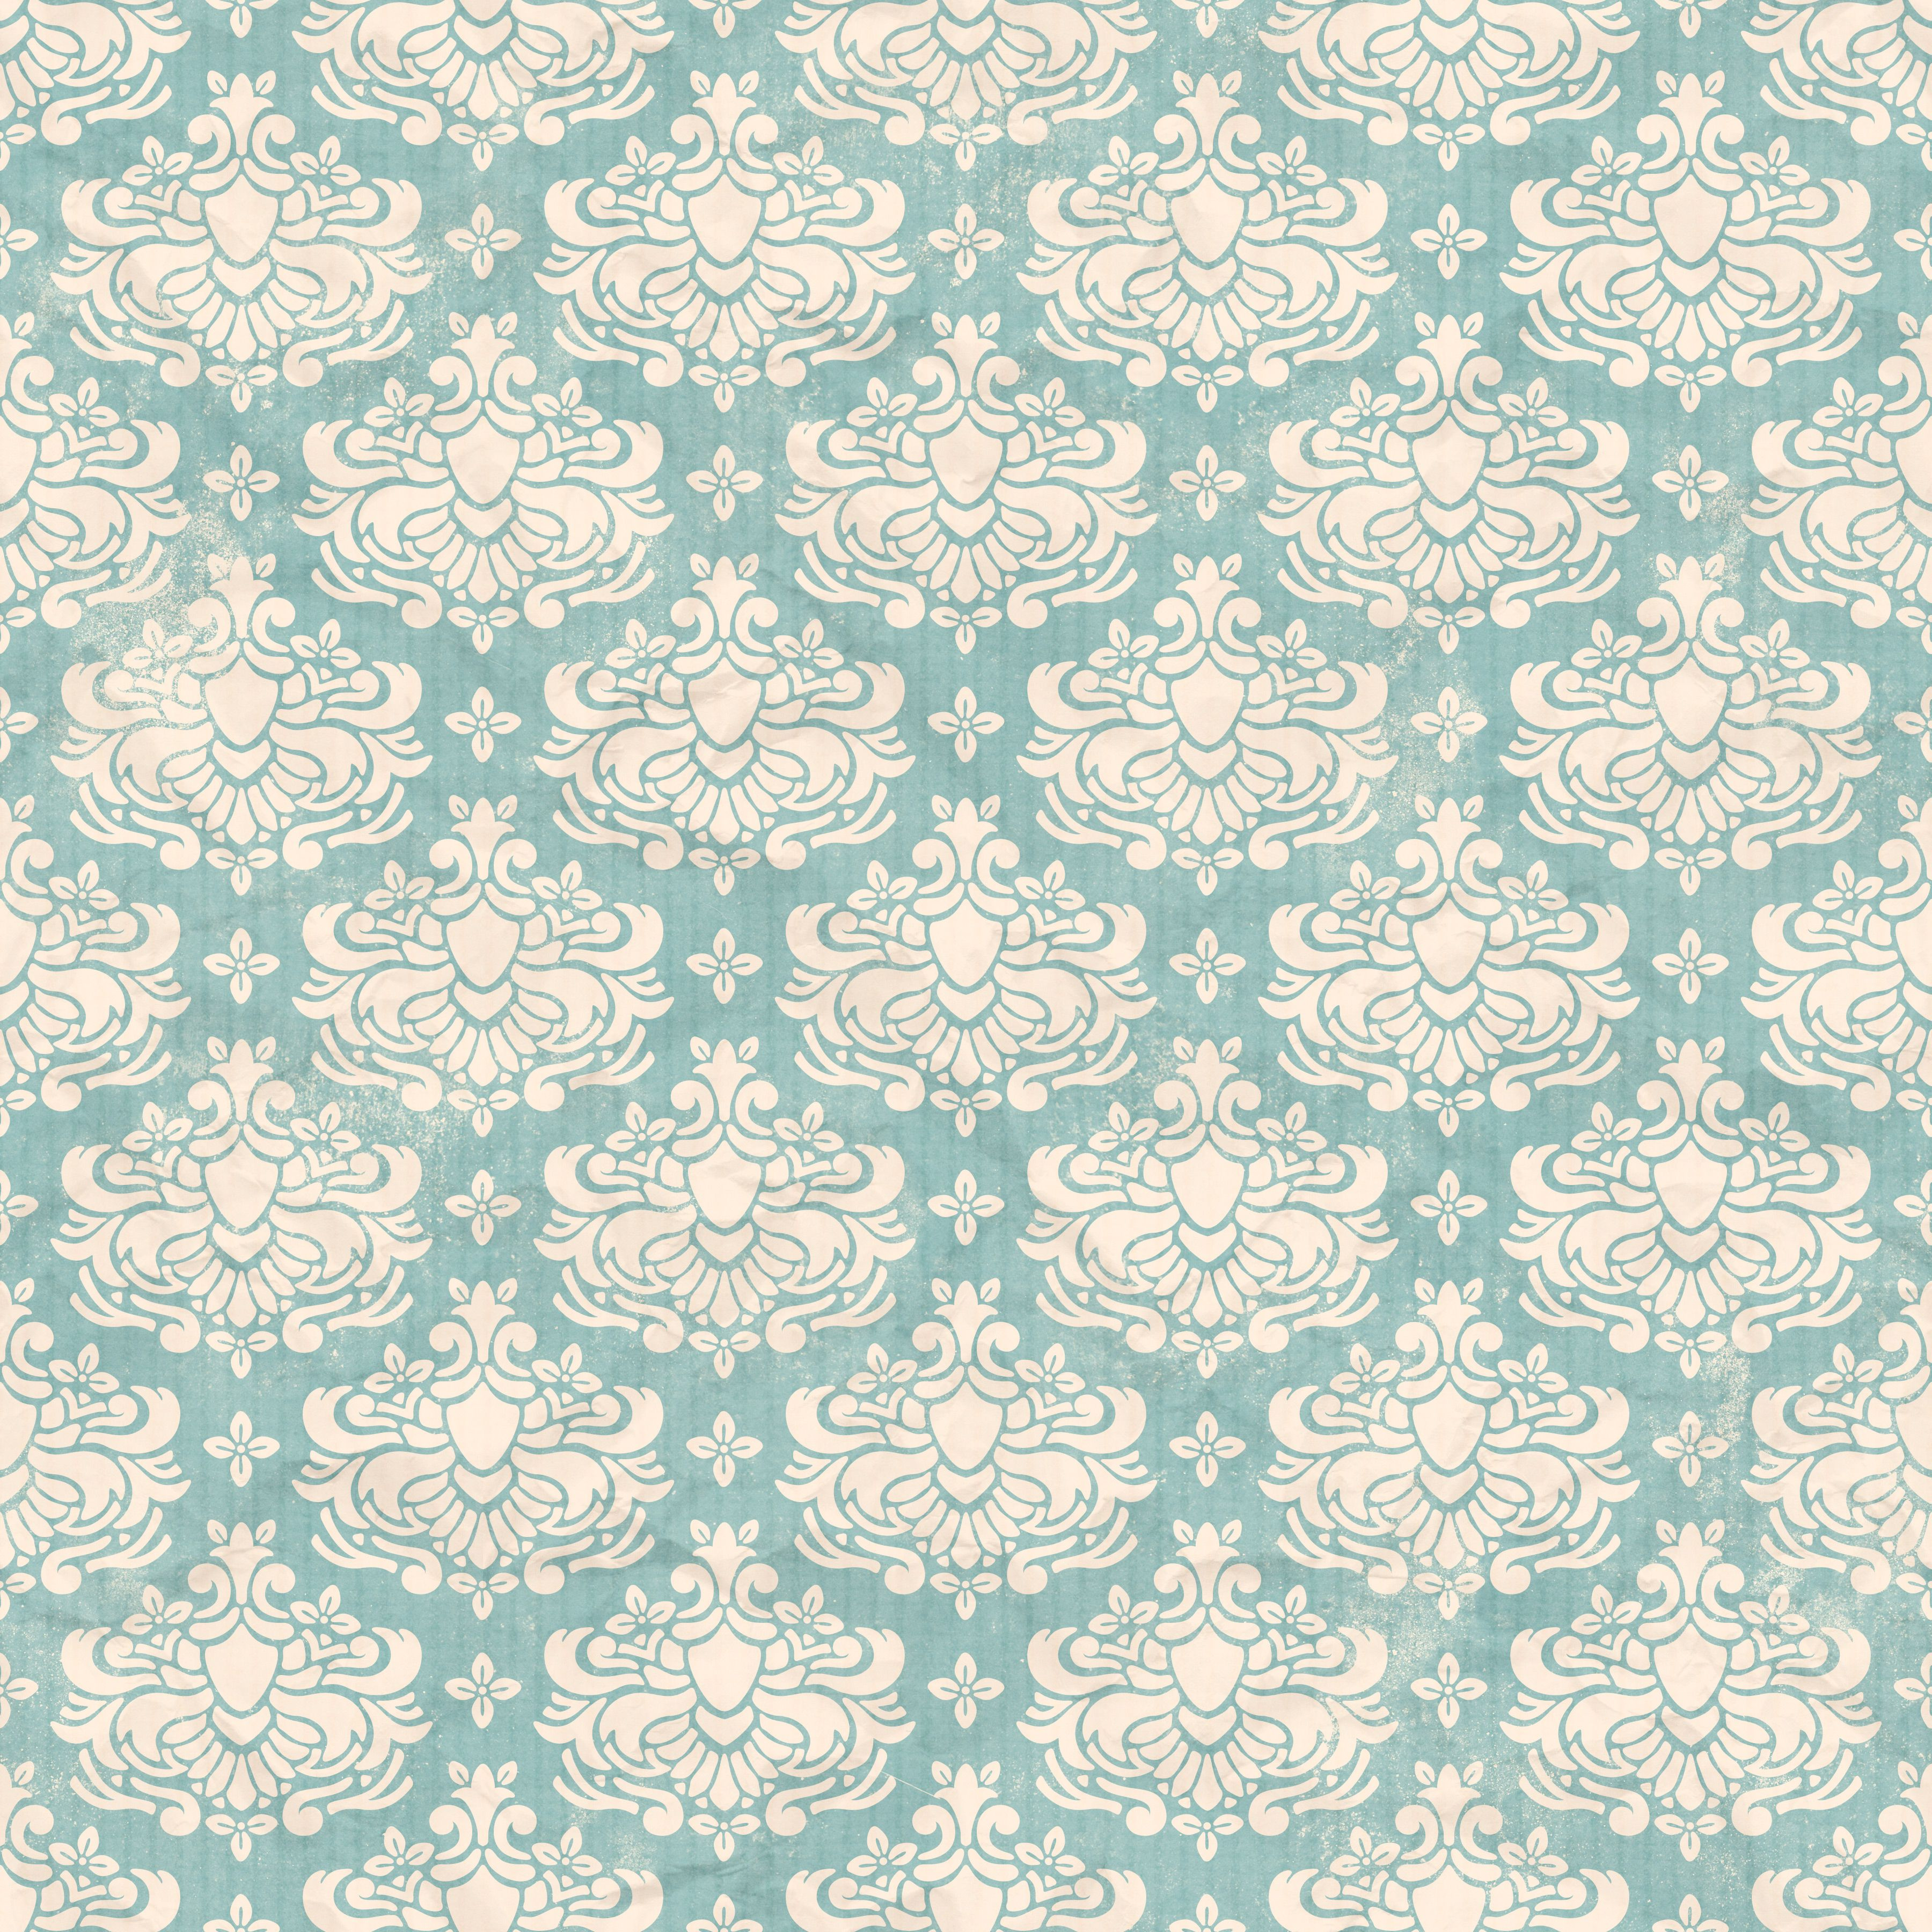 Scrapbook paper images - 38 Awesome Scrapbook Paper Texture Images